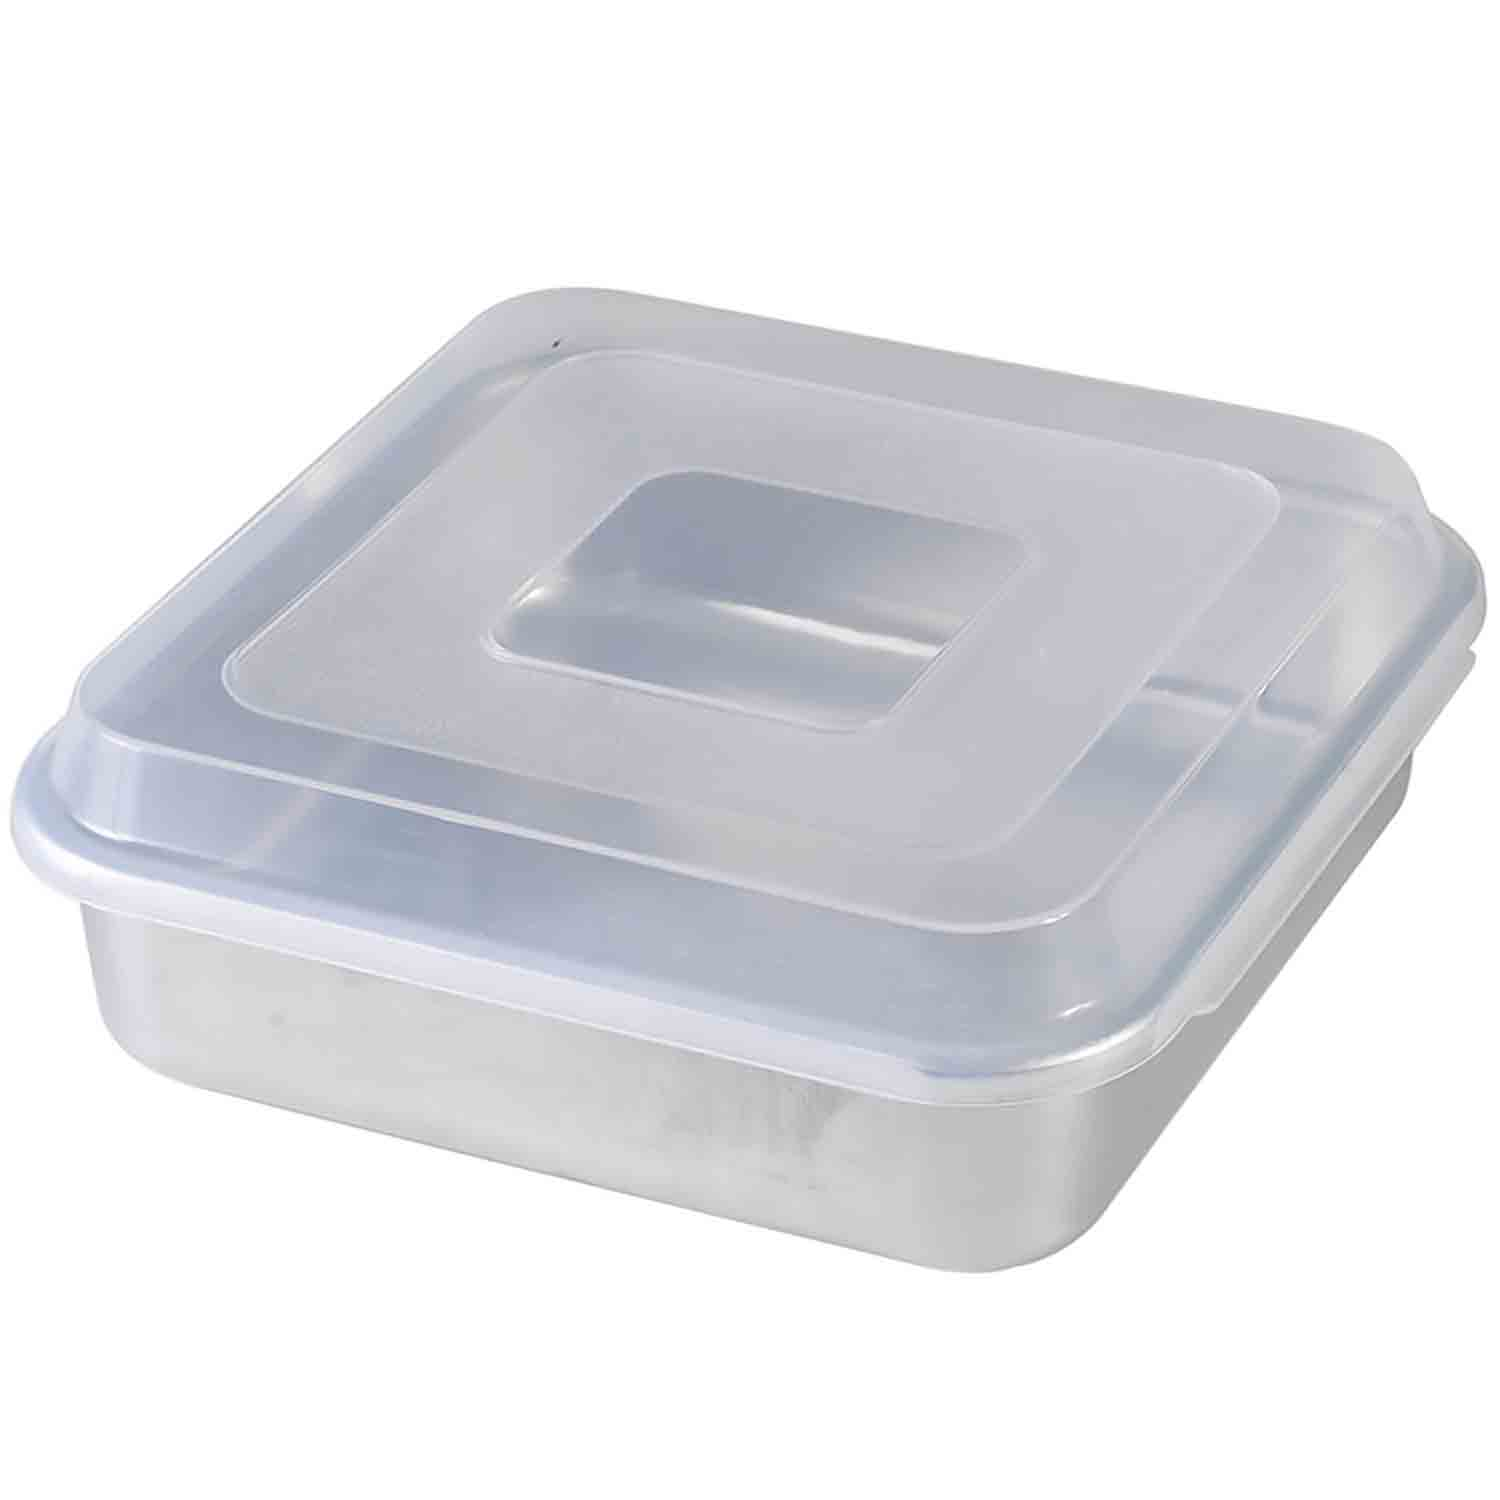 "9 x 9"" Cake Pan with Lid"